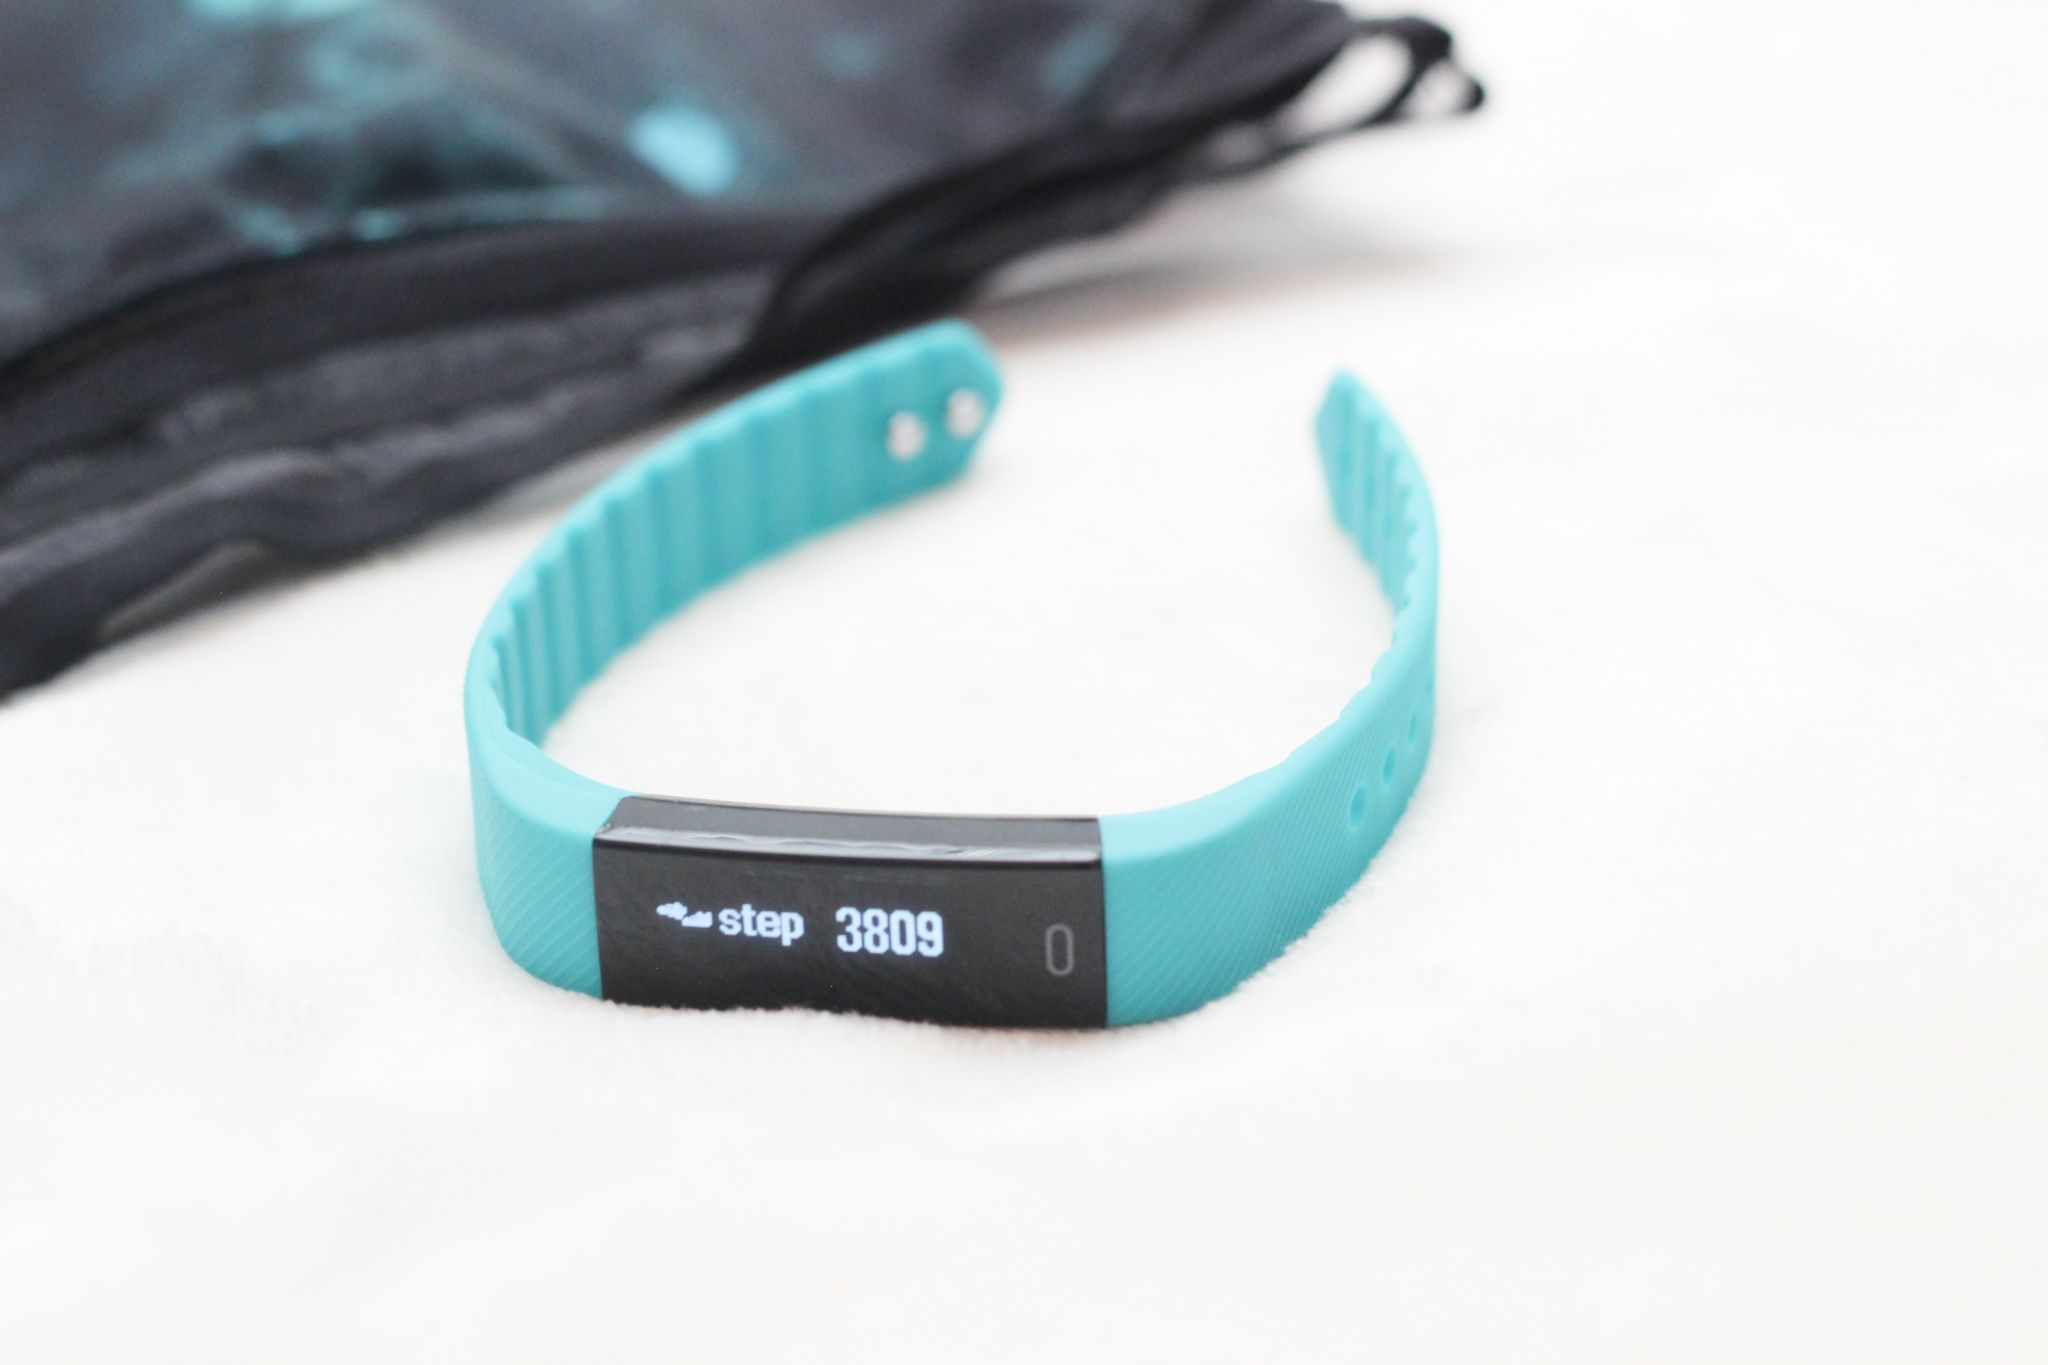 FourFit Fit Band Steps